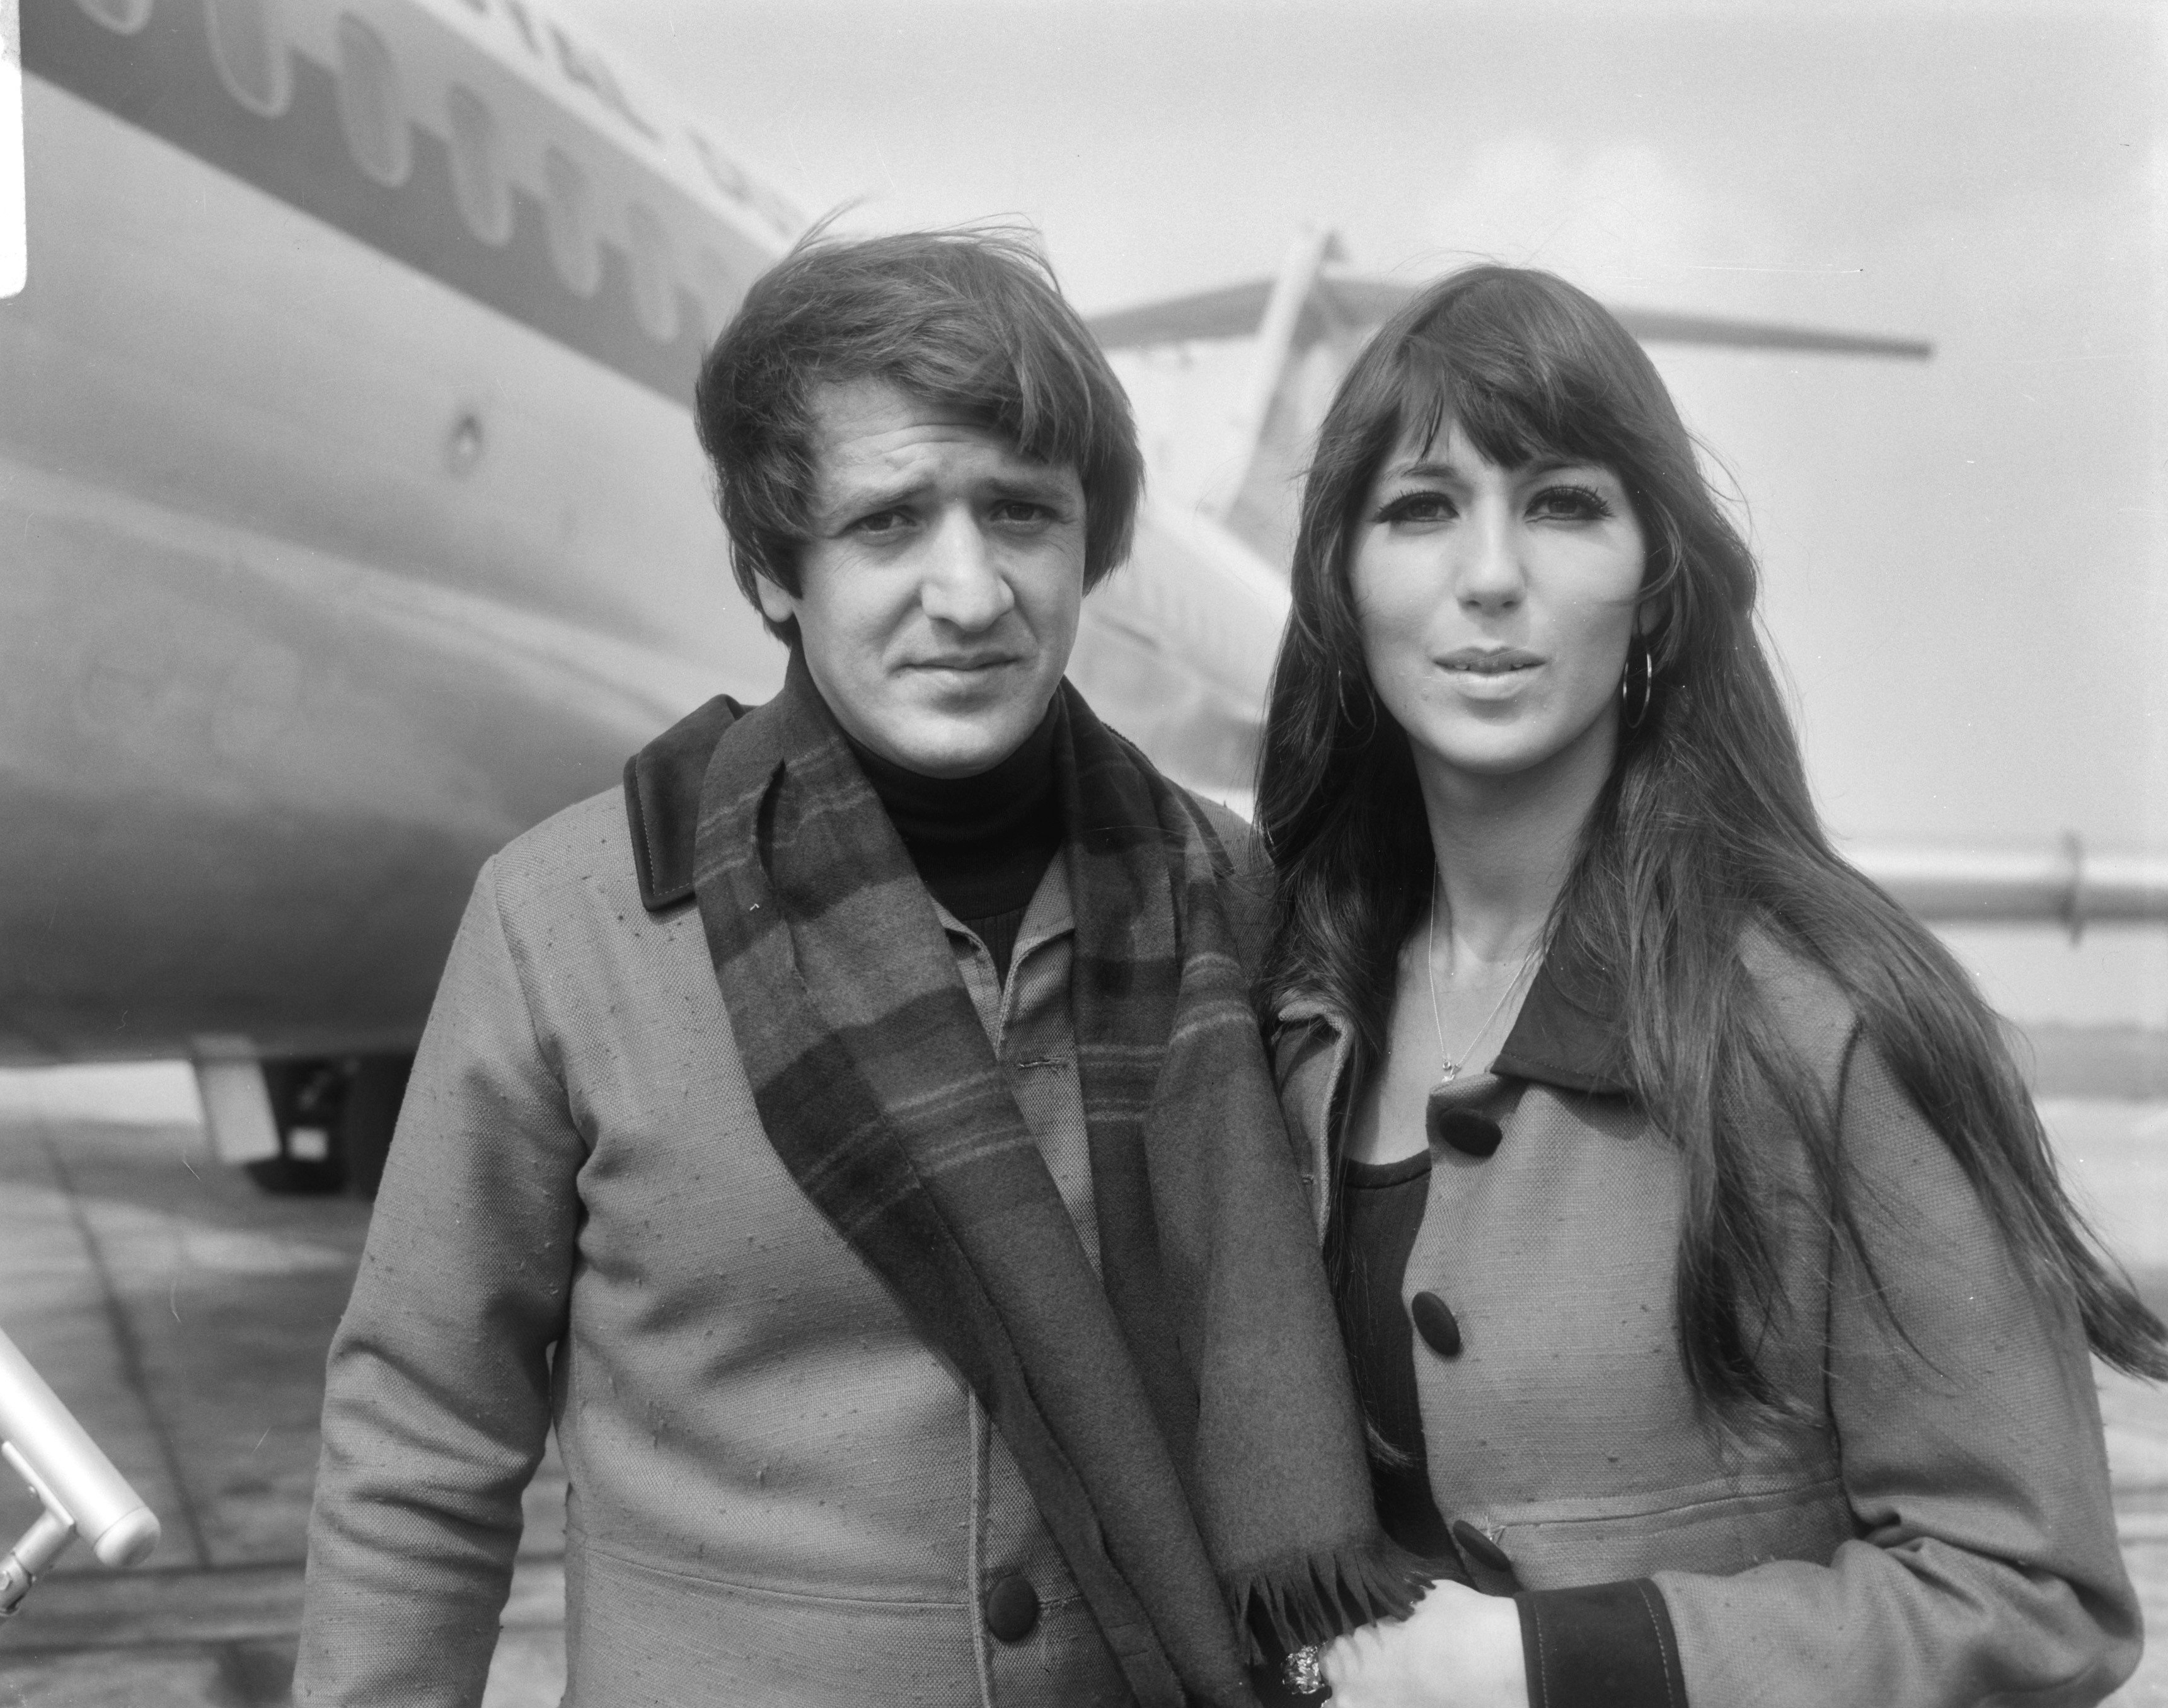 Sonny & Cher in Amsterdam Airport Schiphol, 1966